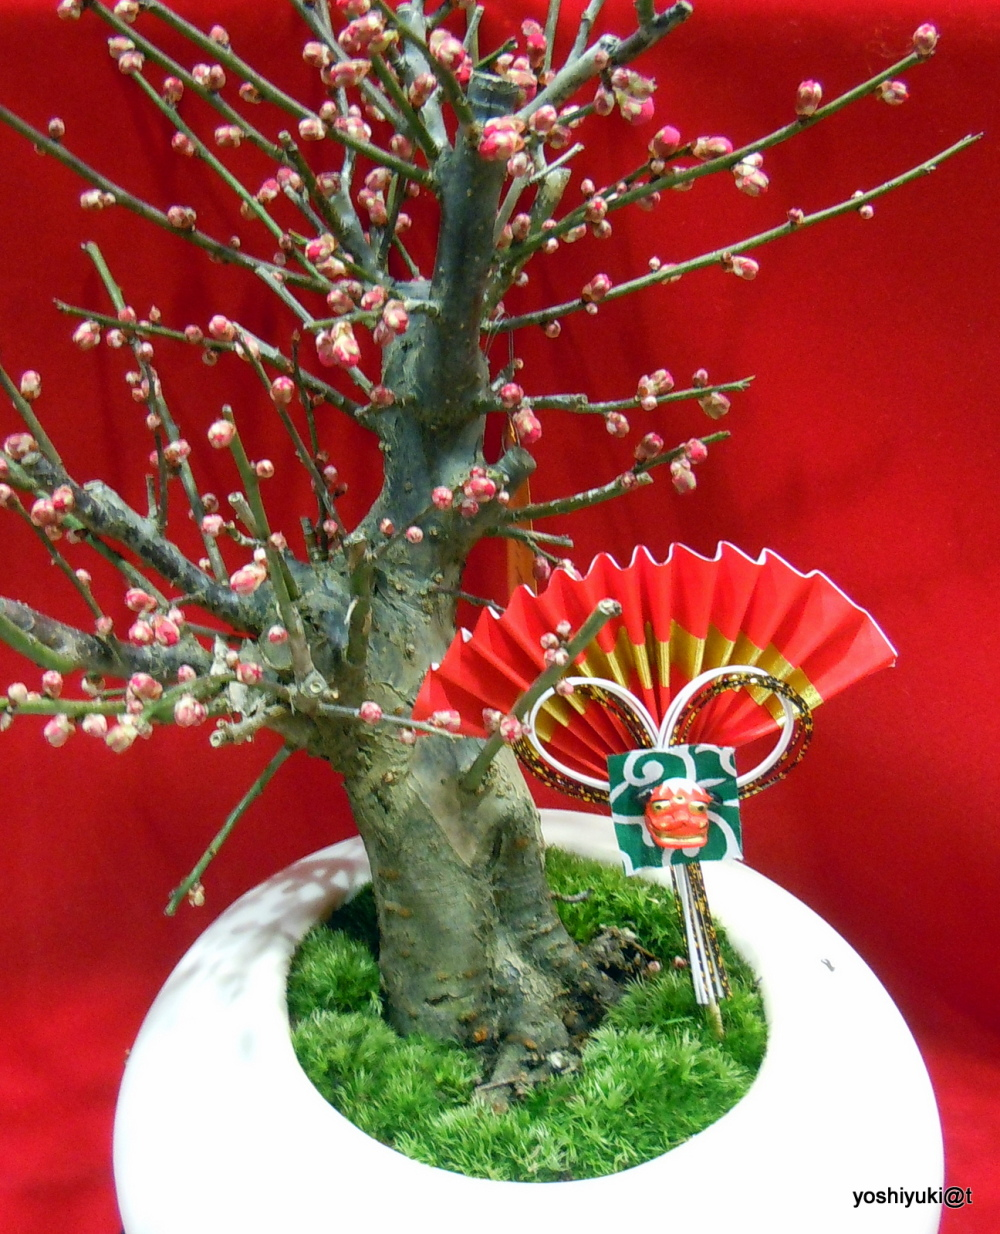 Bonsai - Japanese apricot tree in a pot